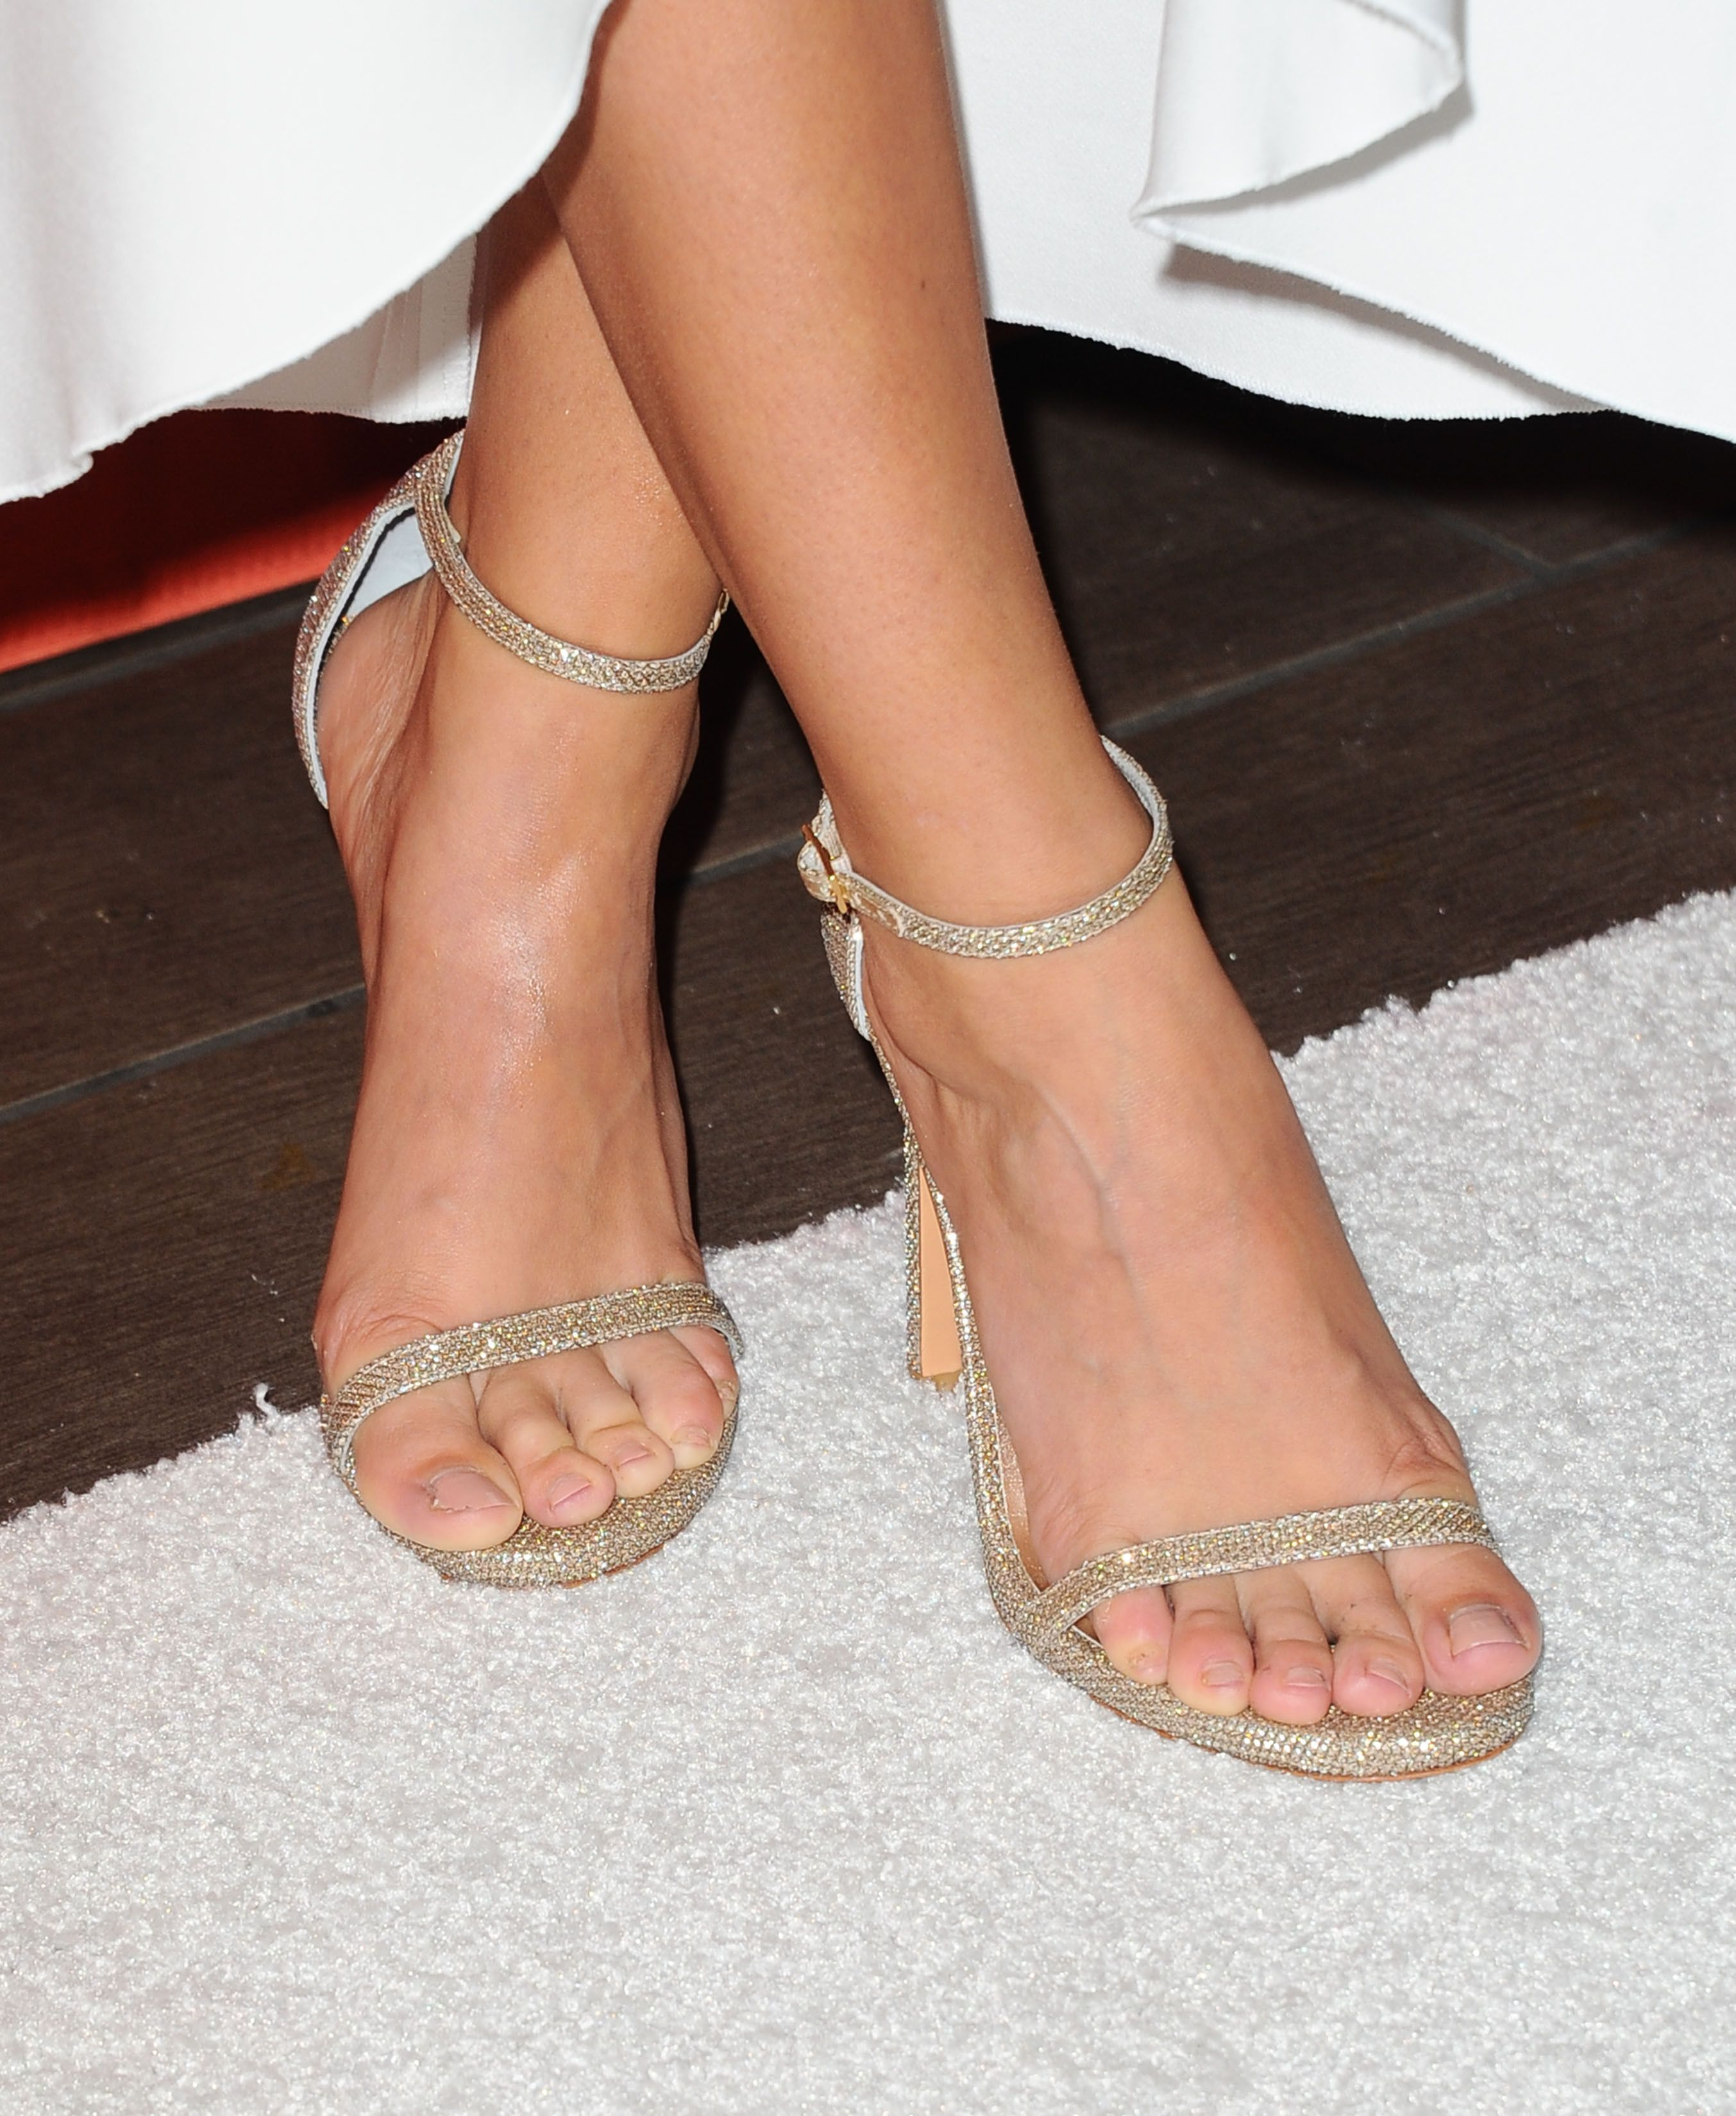 Sarah Hyland Feet Pictures To Pin On Pinterest Thepinsta